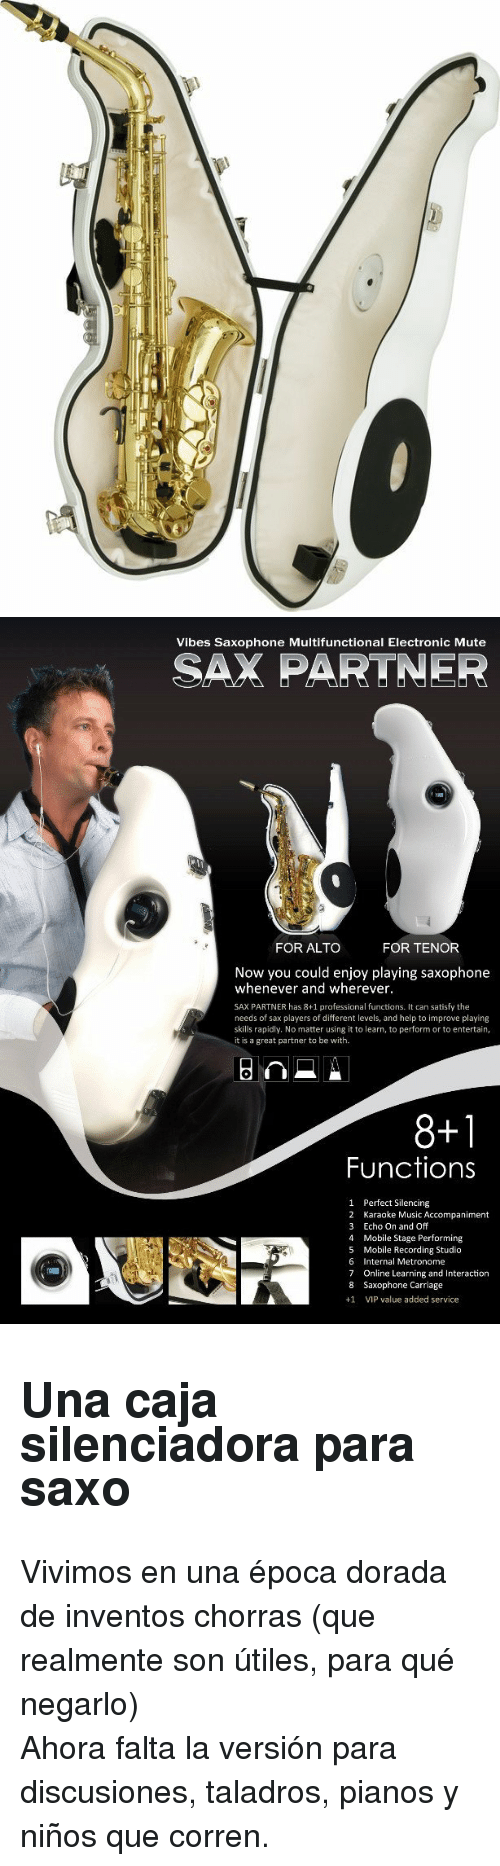 online learning: Vibes Saxophone Multifunctional Electronic Mute  SAX PARTNER  FOR ALTO  FOR TENOR  Now you could enjoy playing saxophone  whenever and wherever.  SAX PARTNER has 8+1 professional functions. It can satisfy the  needs of sax players of different levels, and help to improve playing  skills rapidly. No matter using it to learn, to perform or to entertain  it is a great partner to be with  8+1  Functions  1  2  3  4  5  6  7  8  +1  Perfect Silencing  Karaoke Music Accompaniment  Echo On and Off  Mobile Stage Performing  Mobile Recording Studio  Internal Metronome  Online Learning and Interaction  Saxophone Carriage  VIP value added service <h2>Una caja silenciadora para saxo</h2><p>Vivimos en una época dorada de inventos chorras (que realmente son útiles, para qué negarlo)</p><p>Ahora falta la versión para discusiones, taladros, pianos y niños que corren.</p>